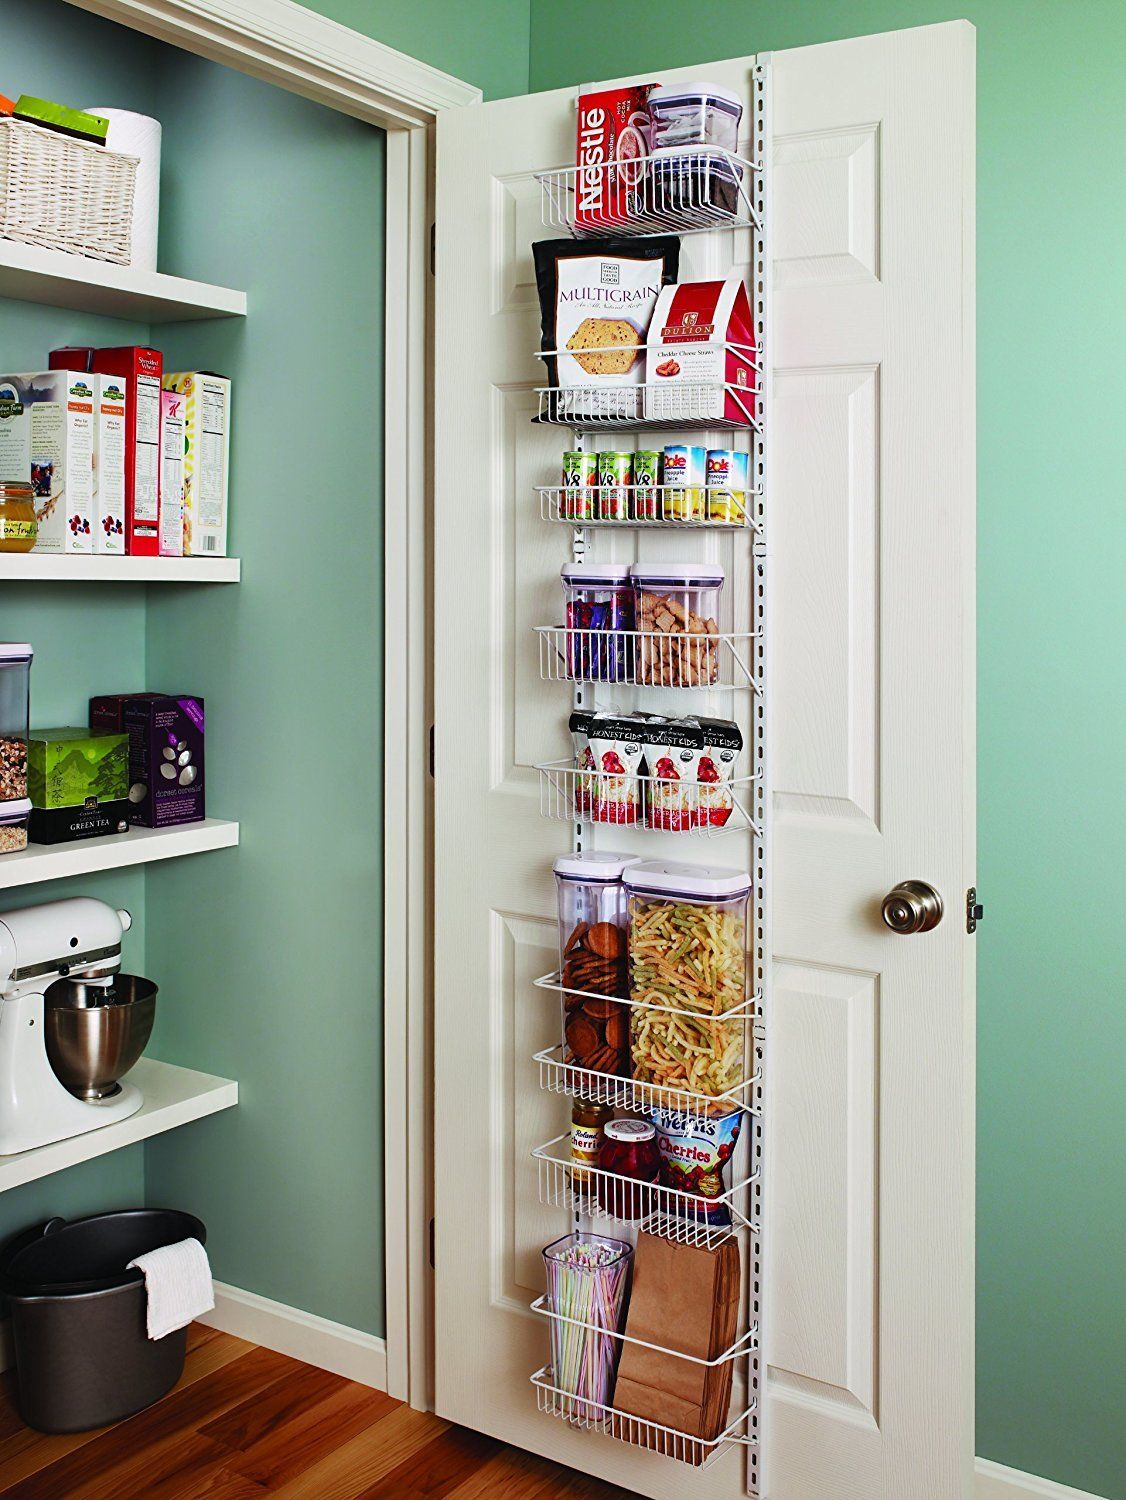 Adjustable Wall Door Storage Rack 8 Shelves Kitchen Pantry Organizer Food Basket 1